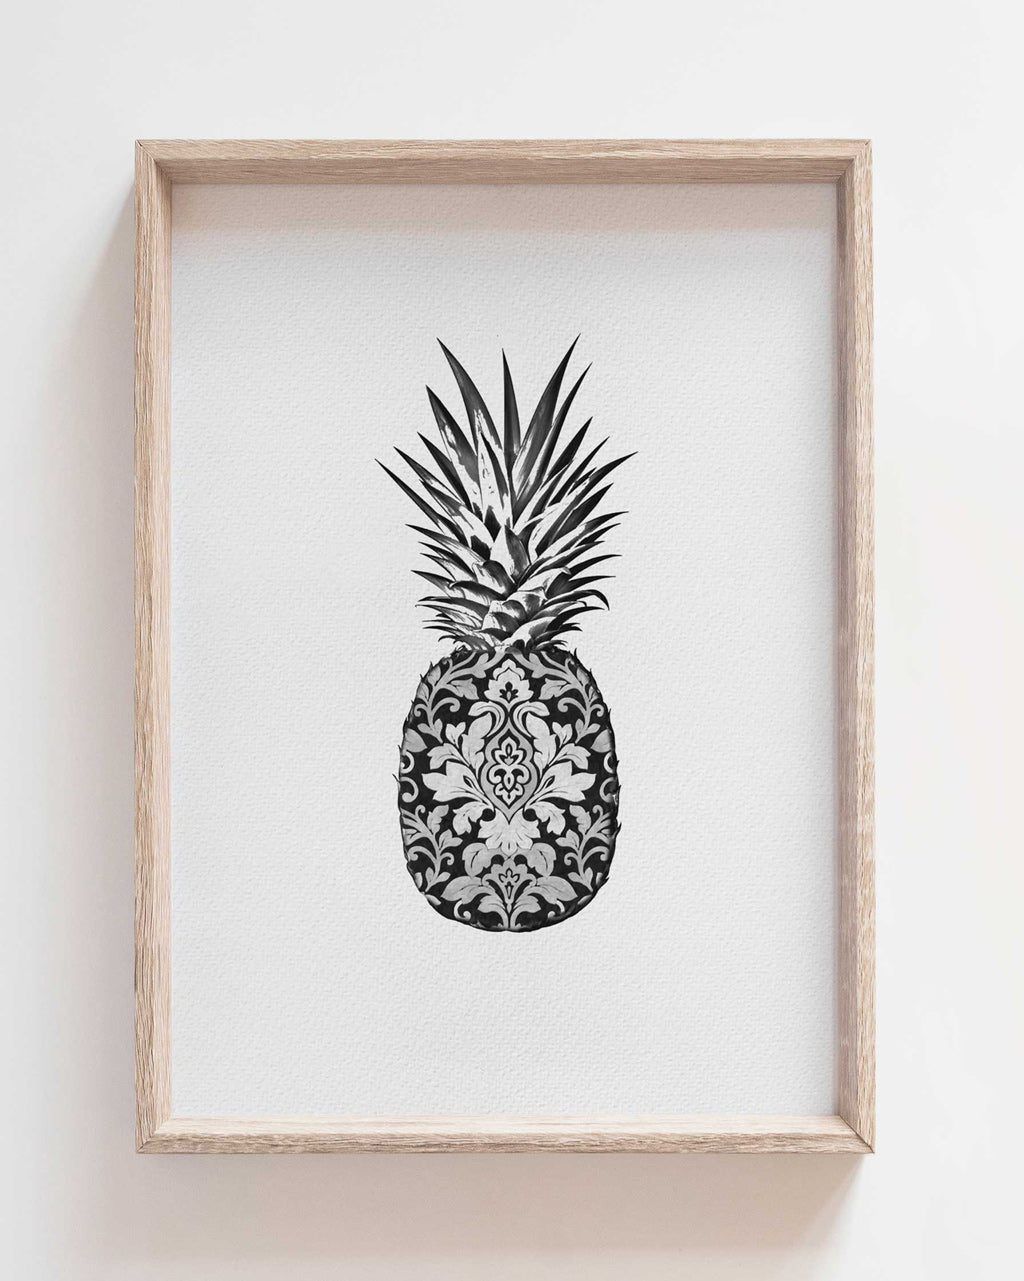 Wallpaper Pineapple - print of original illustration on watercolour paper